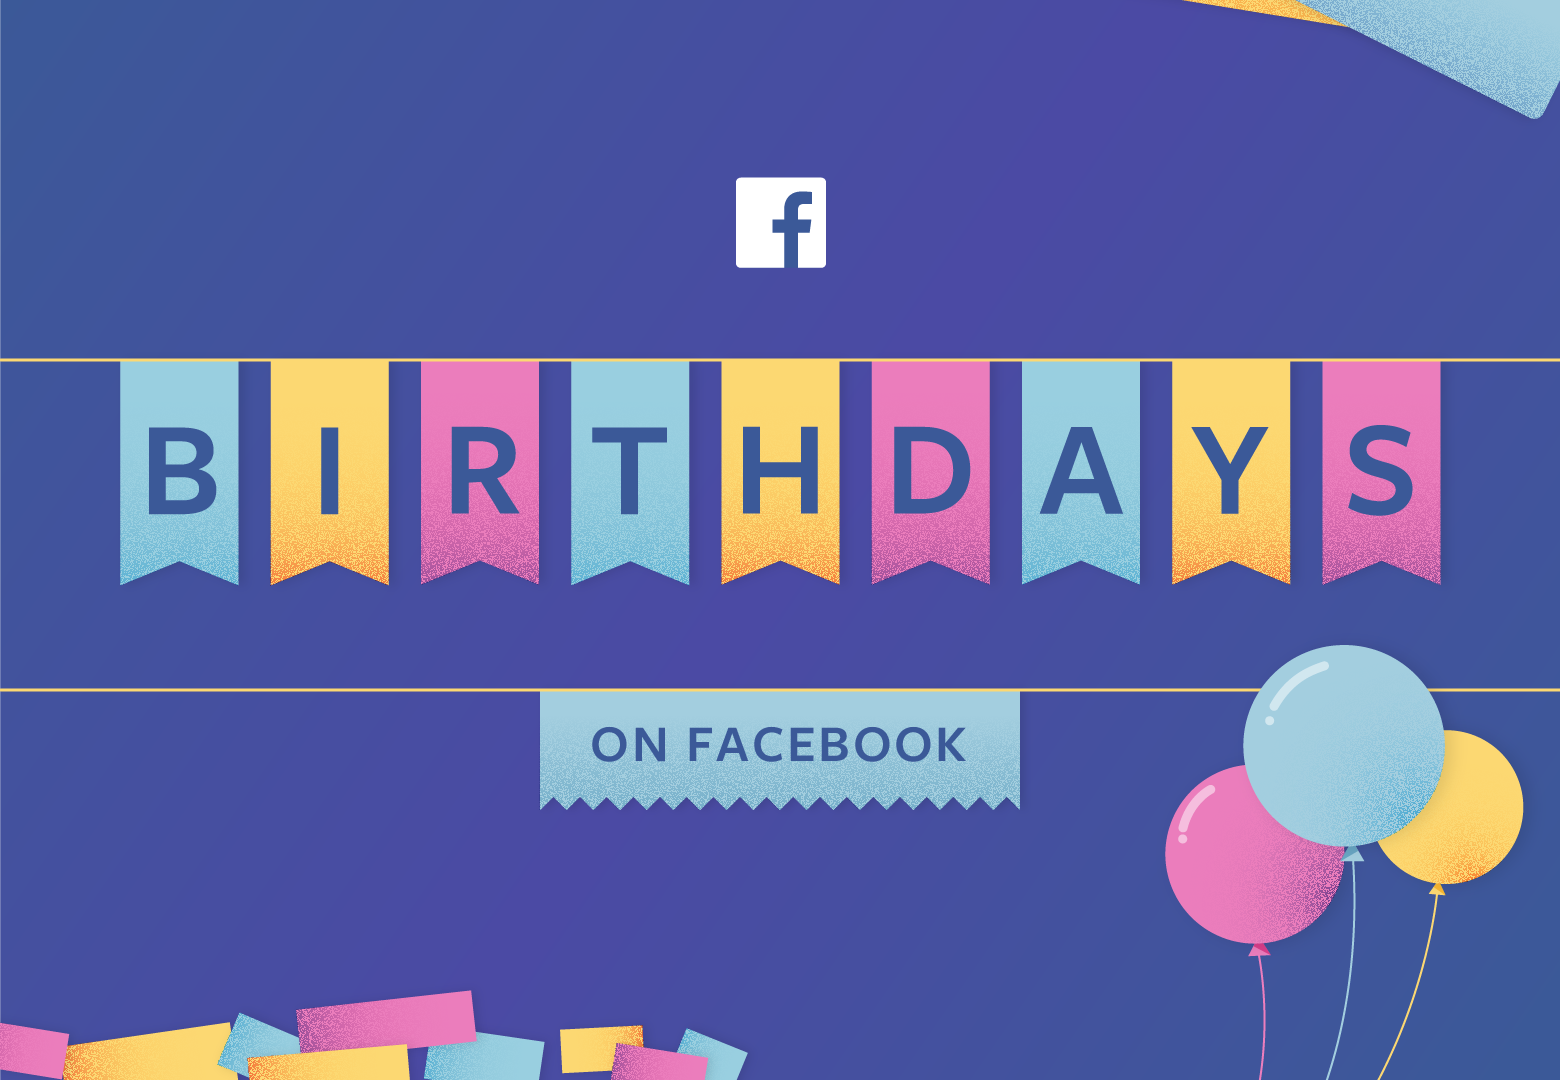 How To Get The Creative Happy Birthday Wishes On Facebook